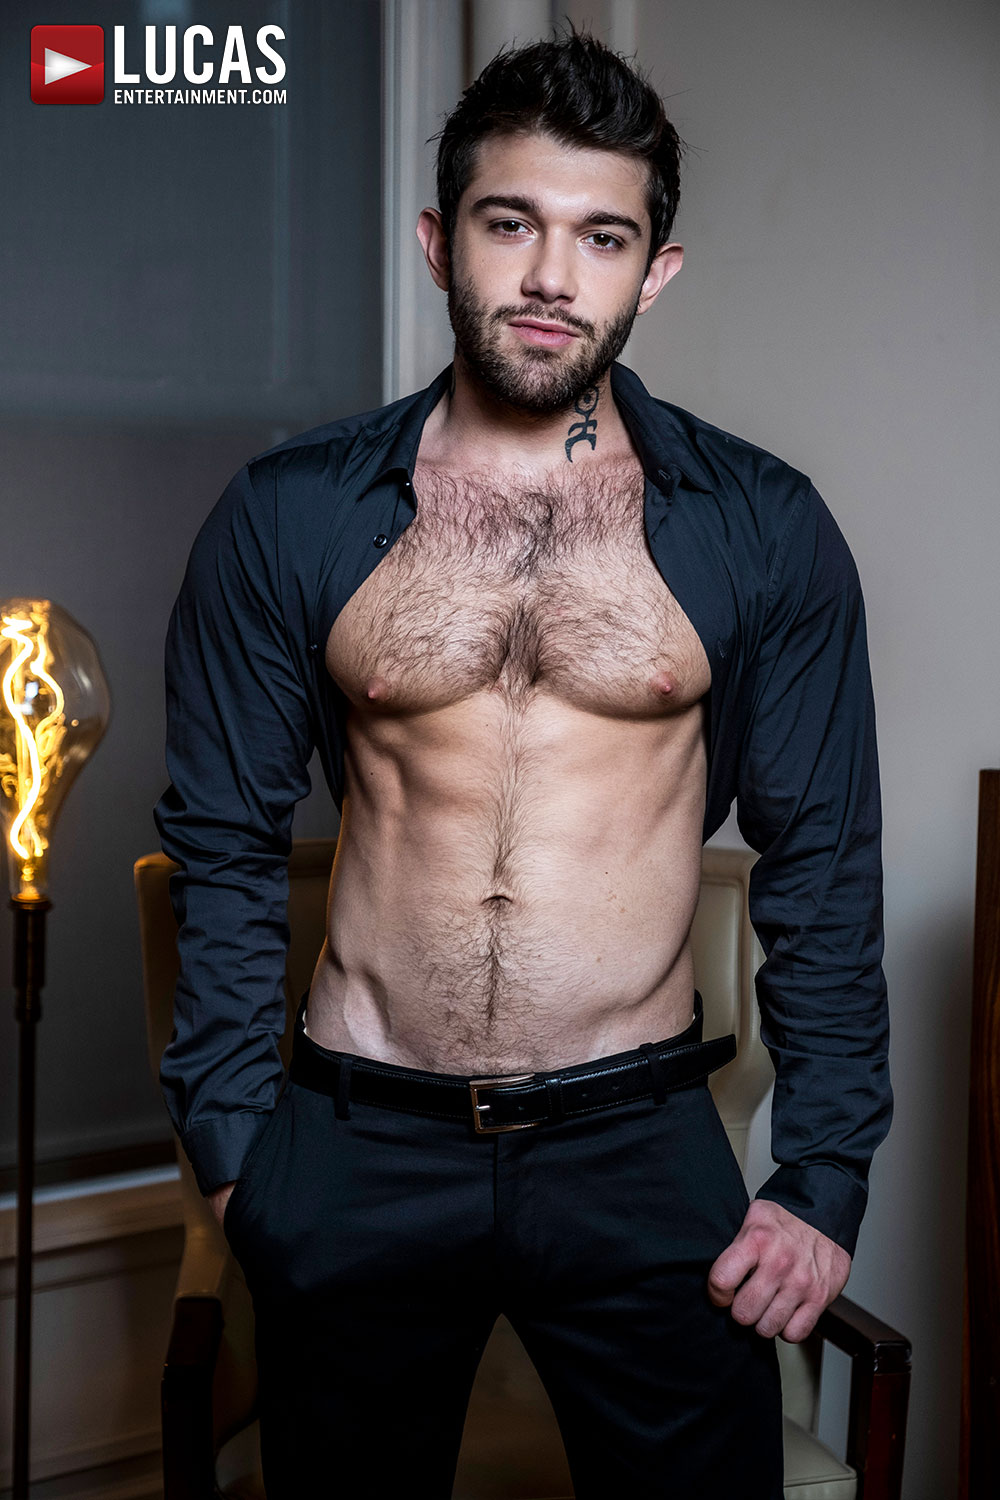 Ben Batemen - Gay Model - Lucas Entertainment